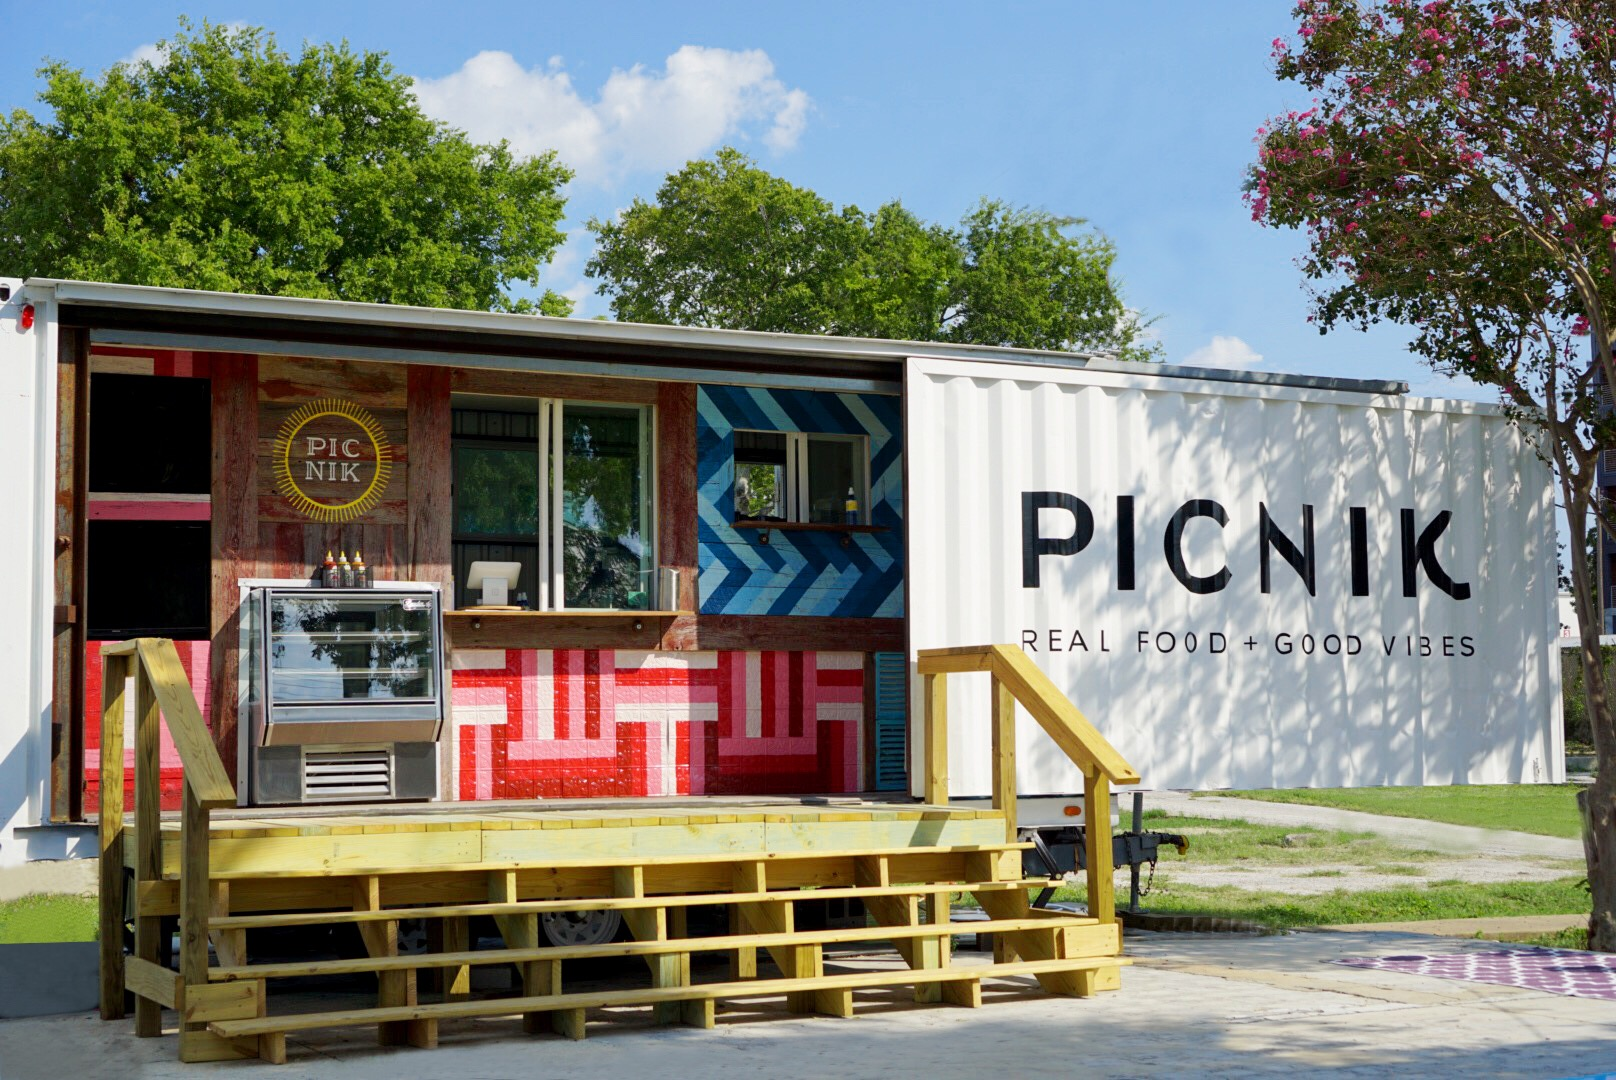 Picnik's Lawsuit Over the Word 'Picnic' Is Still Dragging On